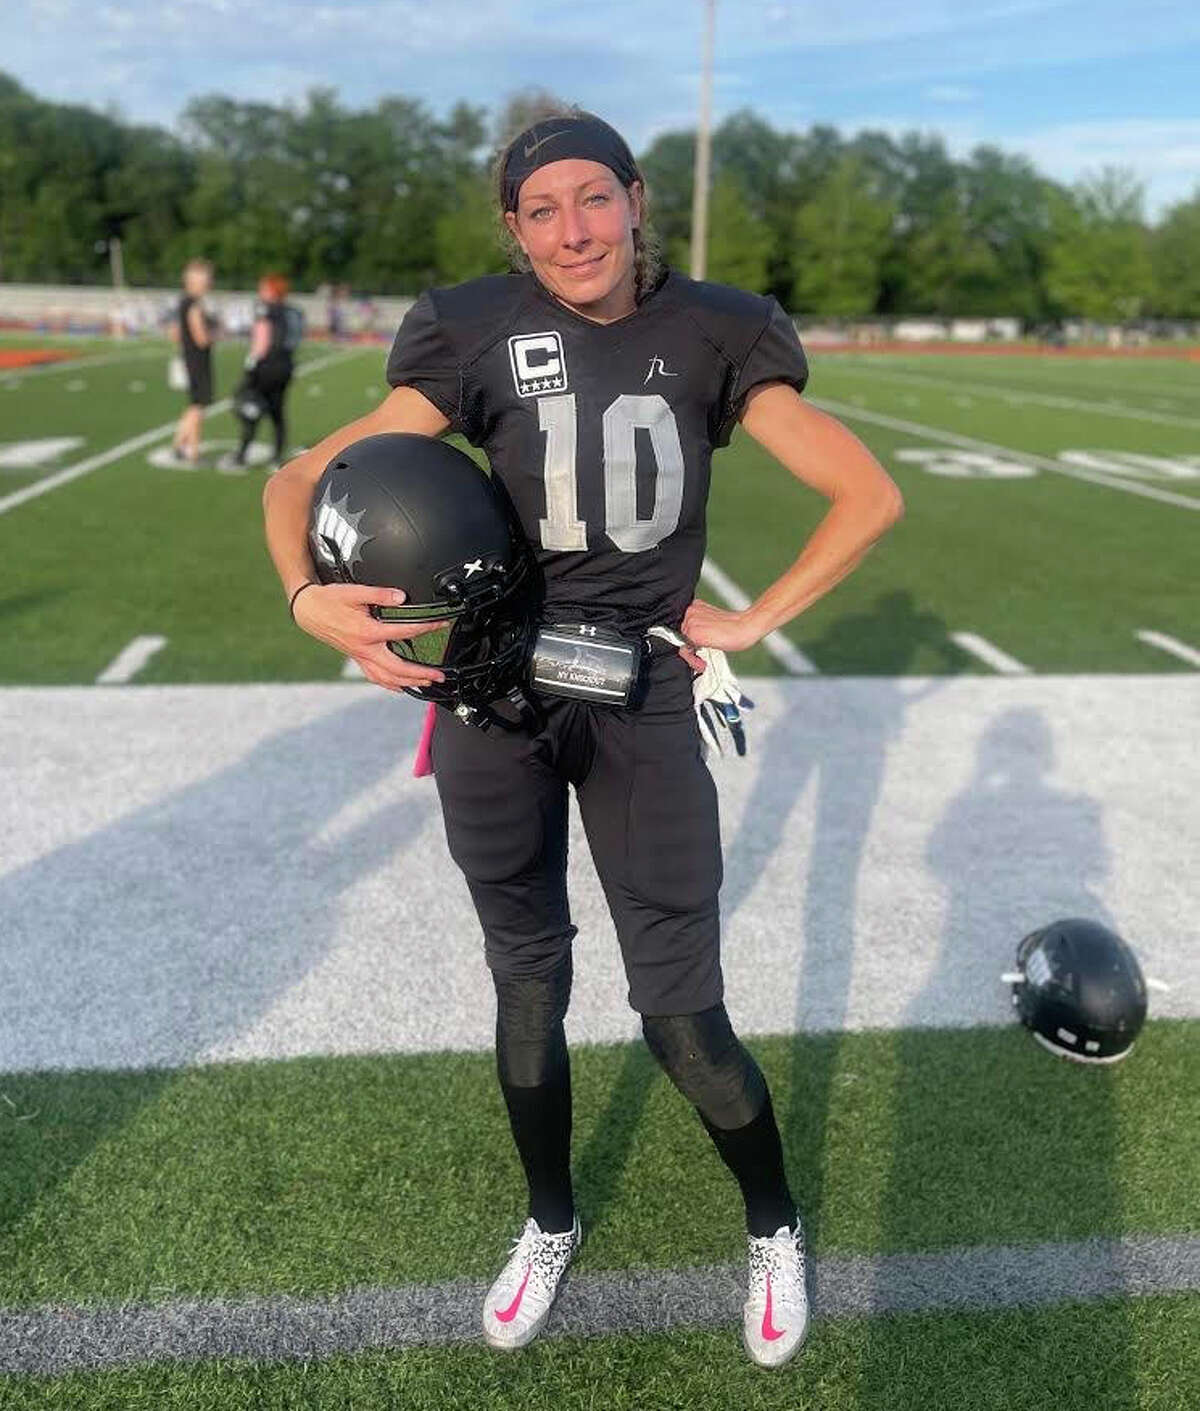 All-American Alaina Lange, a former College of Saint Rose soccer player, plays for the semi-pro women's tackle football team The New York Knockout, based in Schenectady County. (Provided)